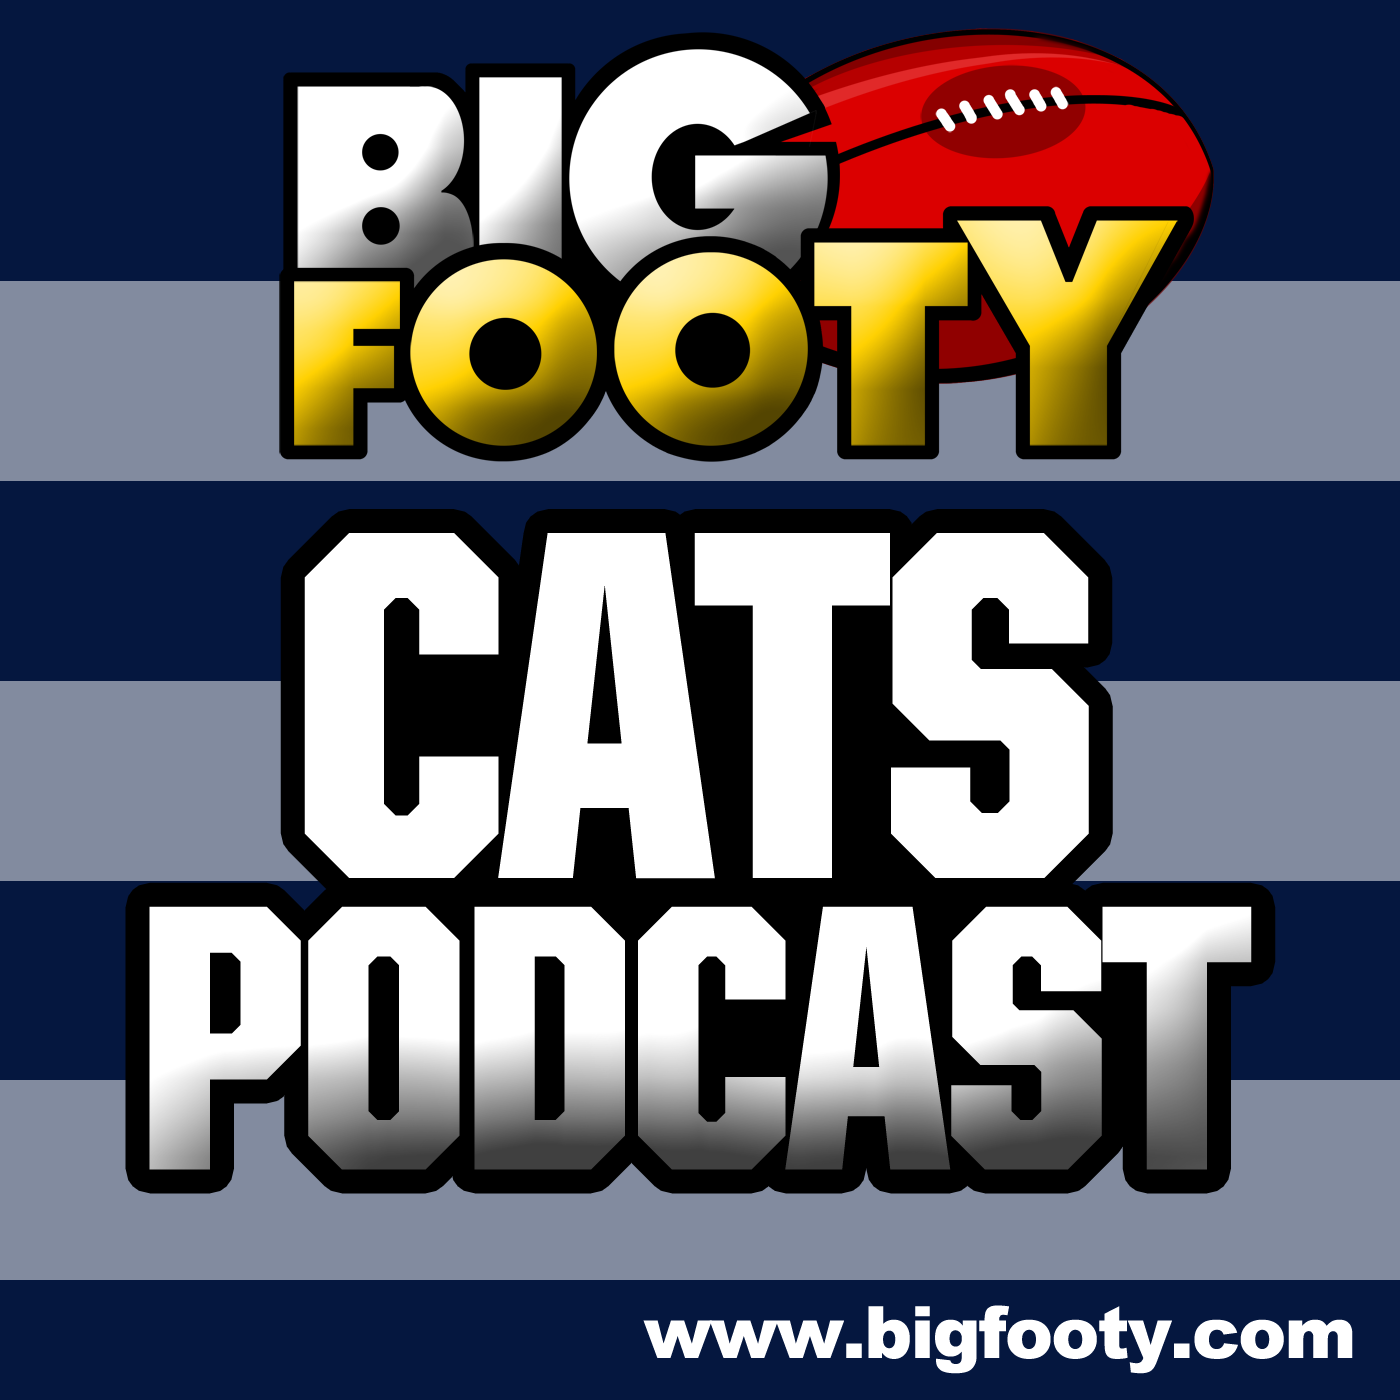 BigFooty Cats AFL Podcast